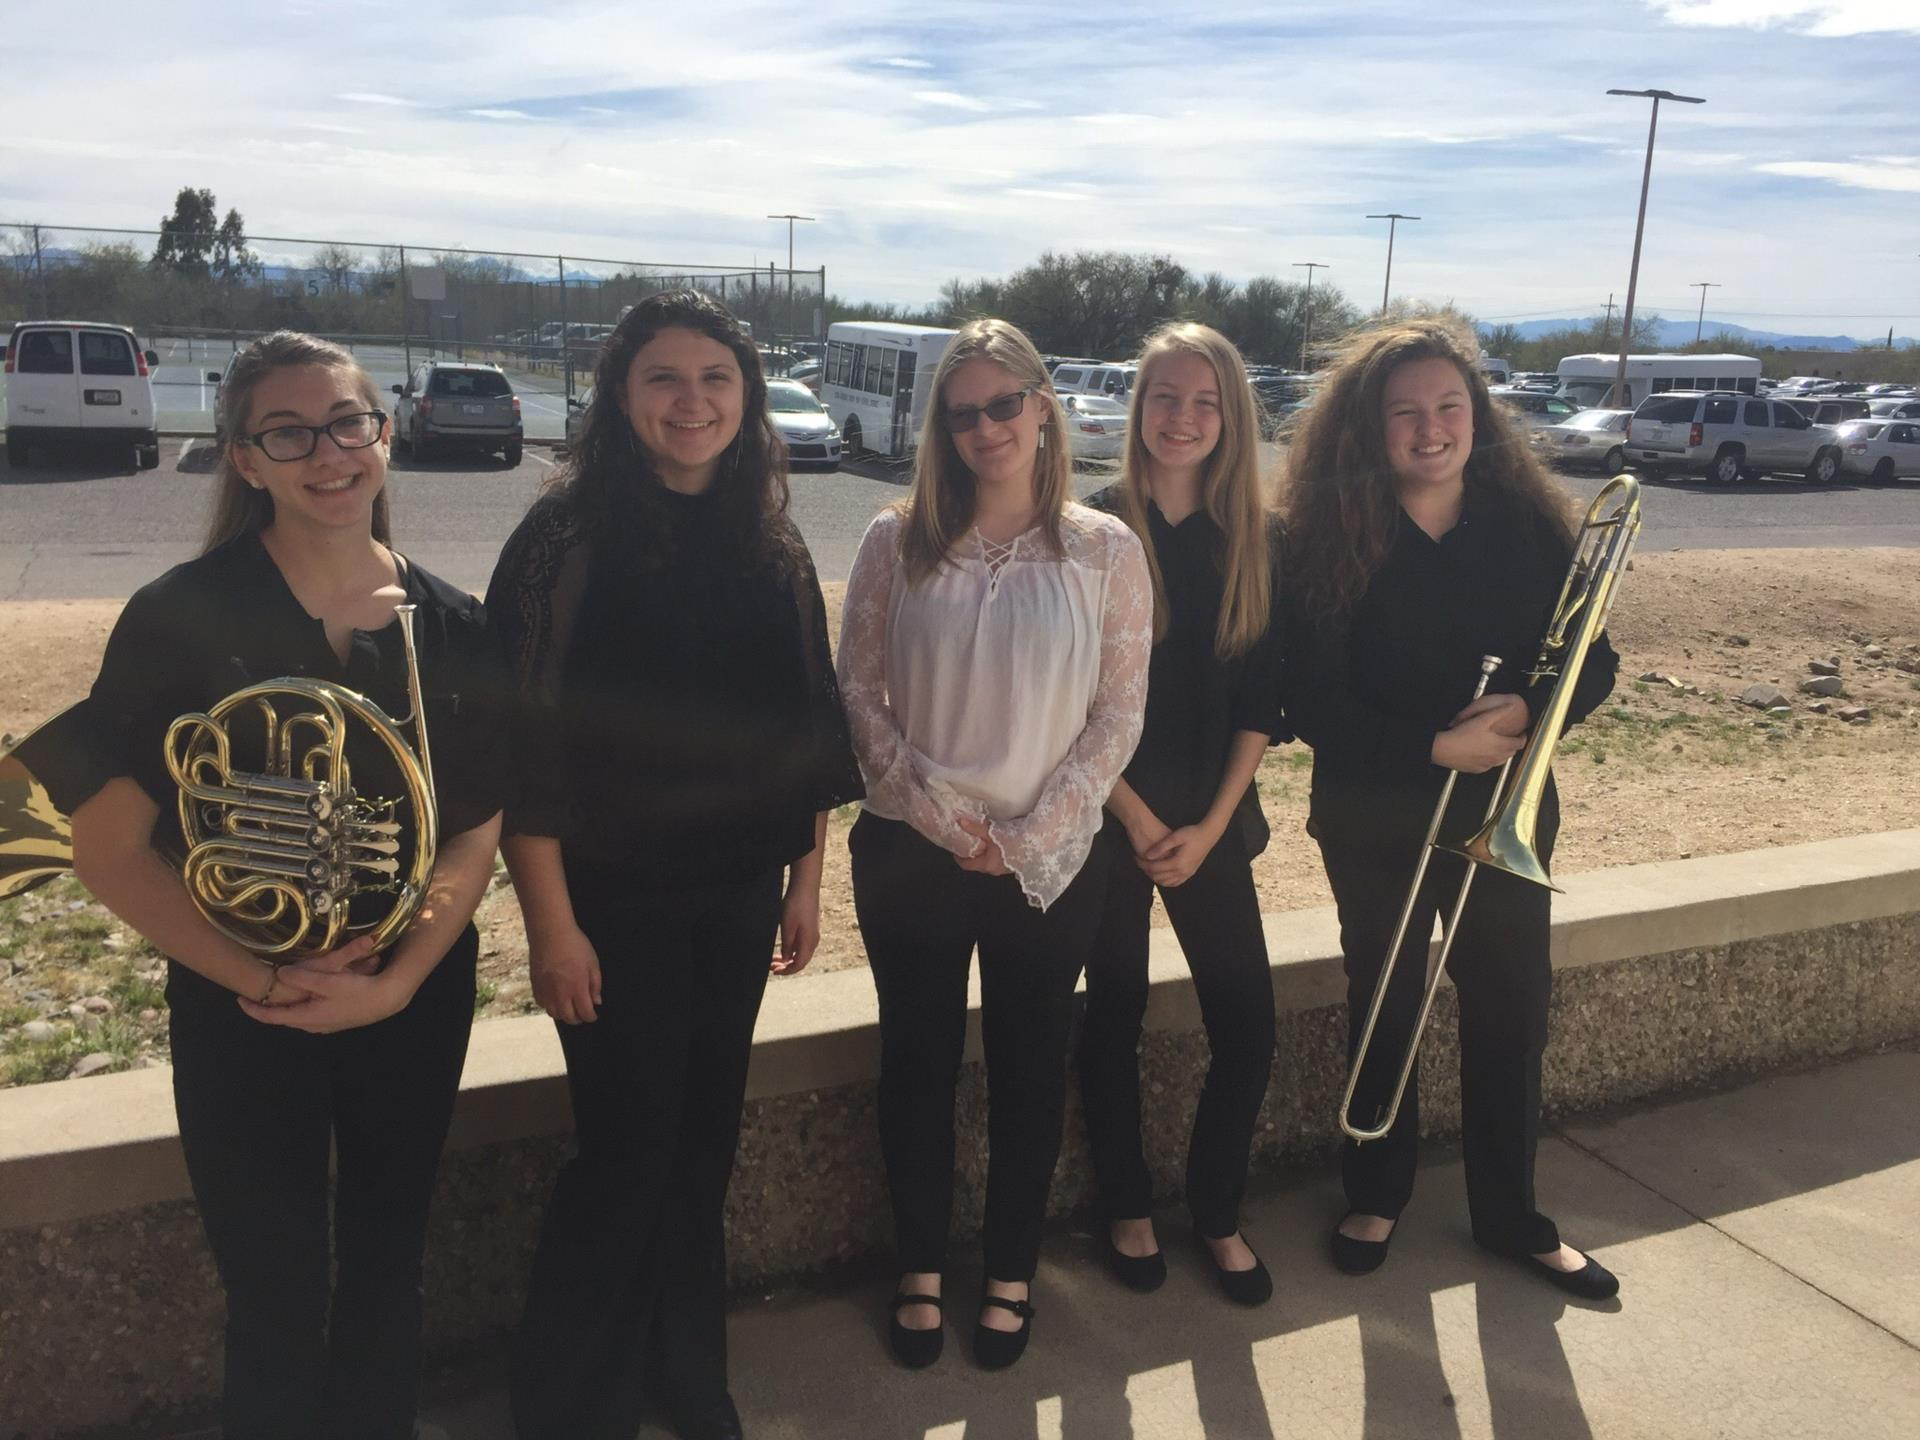 High school students with french horn and trombone